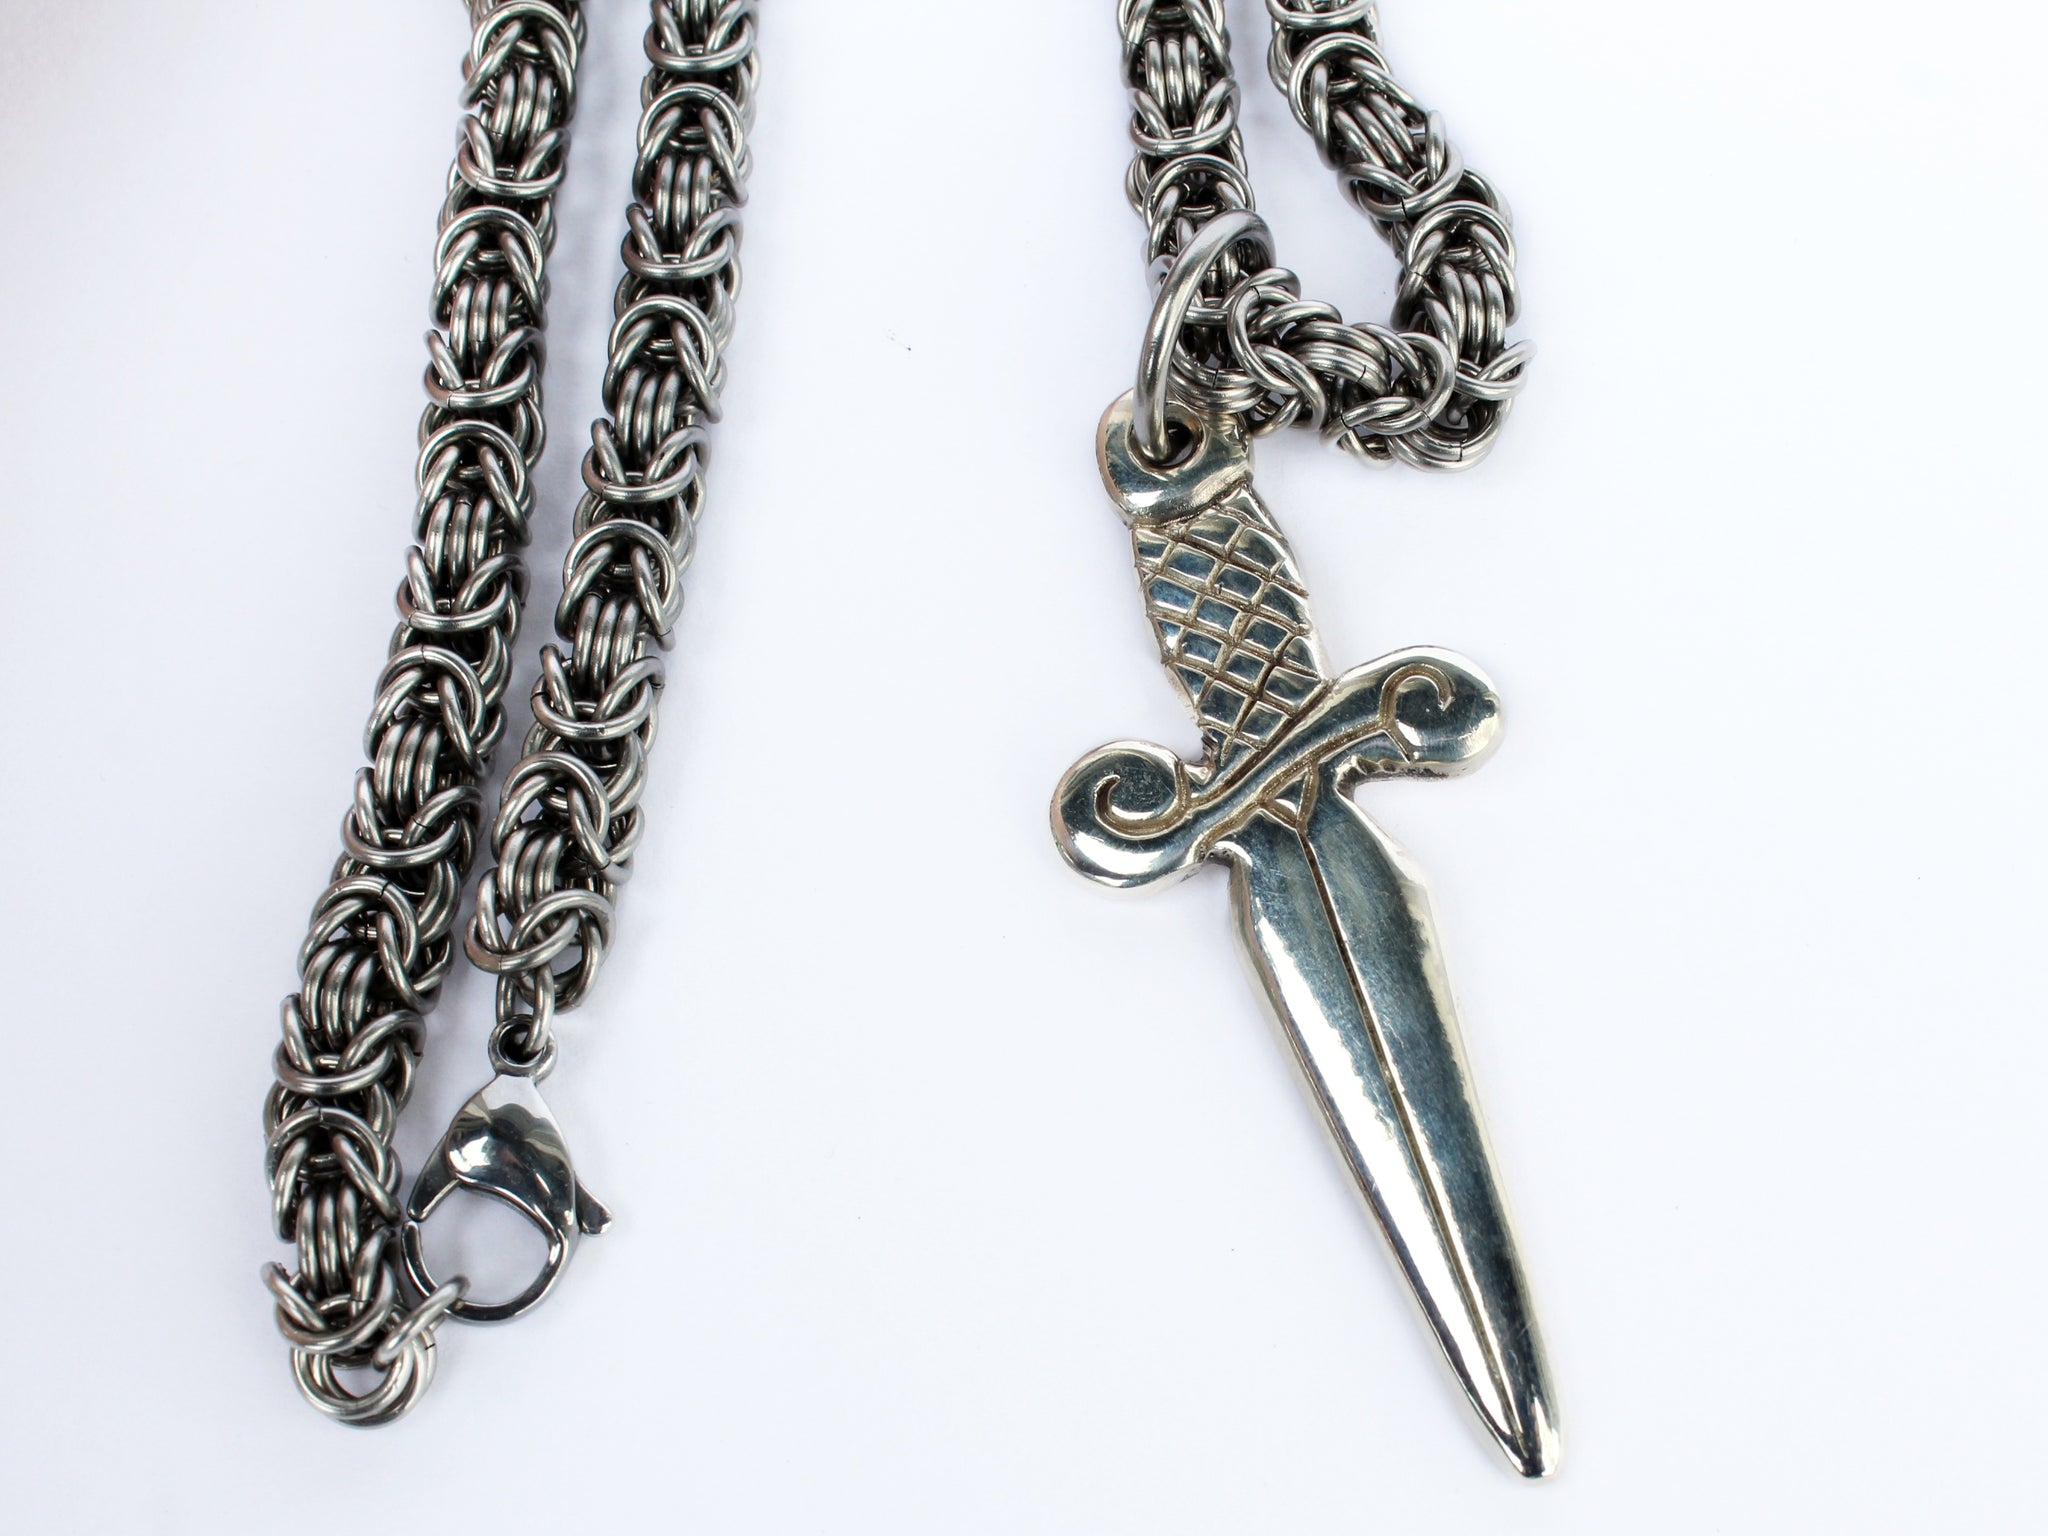 sterling silver dagger knife sword pendant with thick chain by san filippo leather